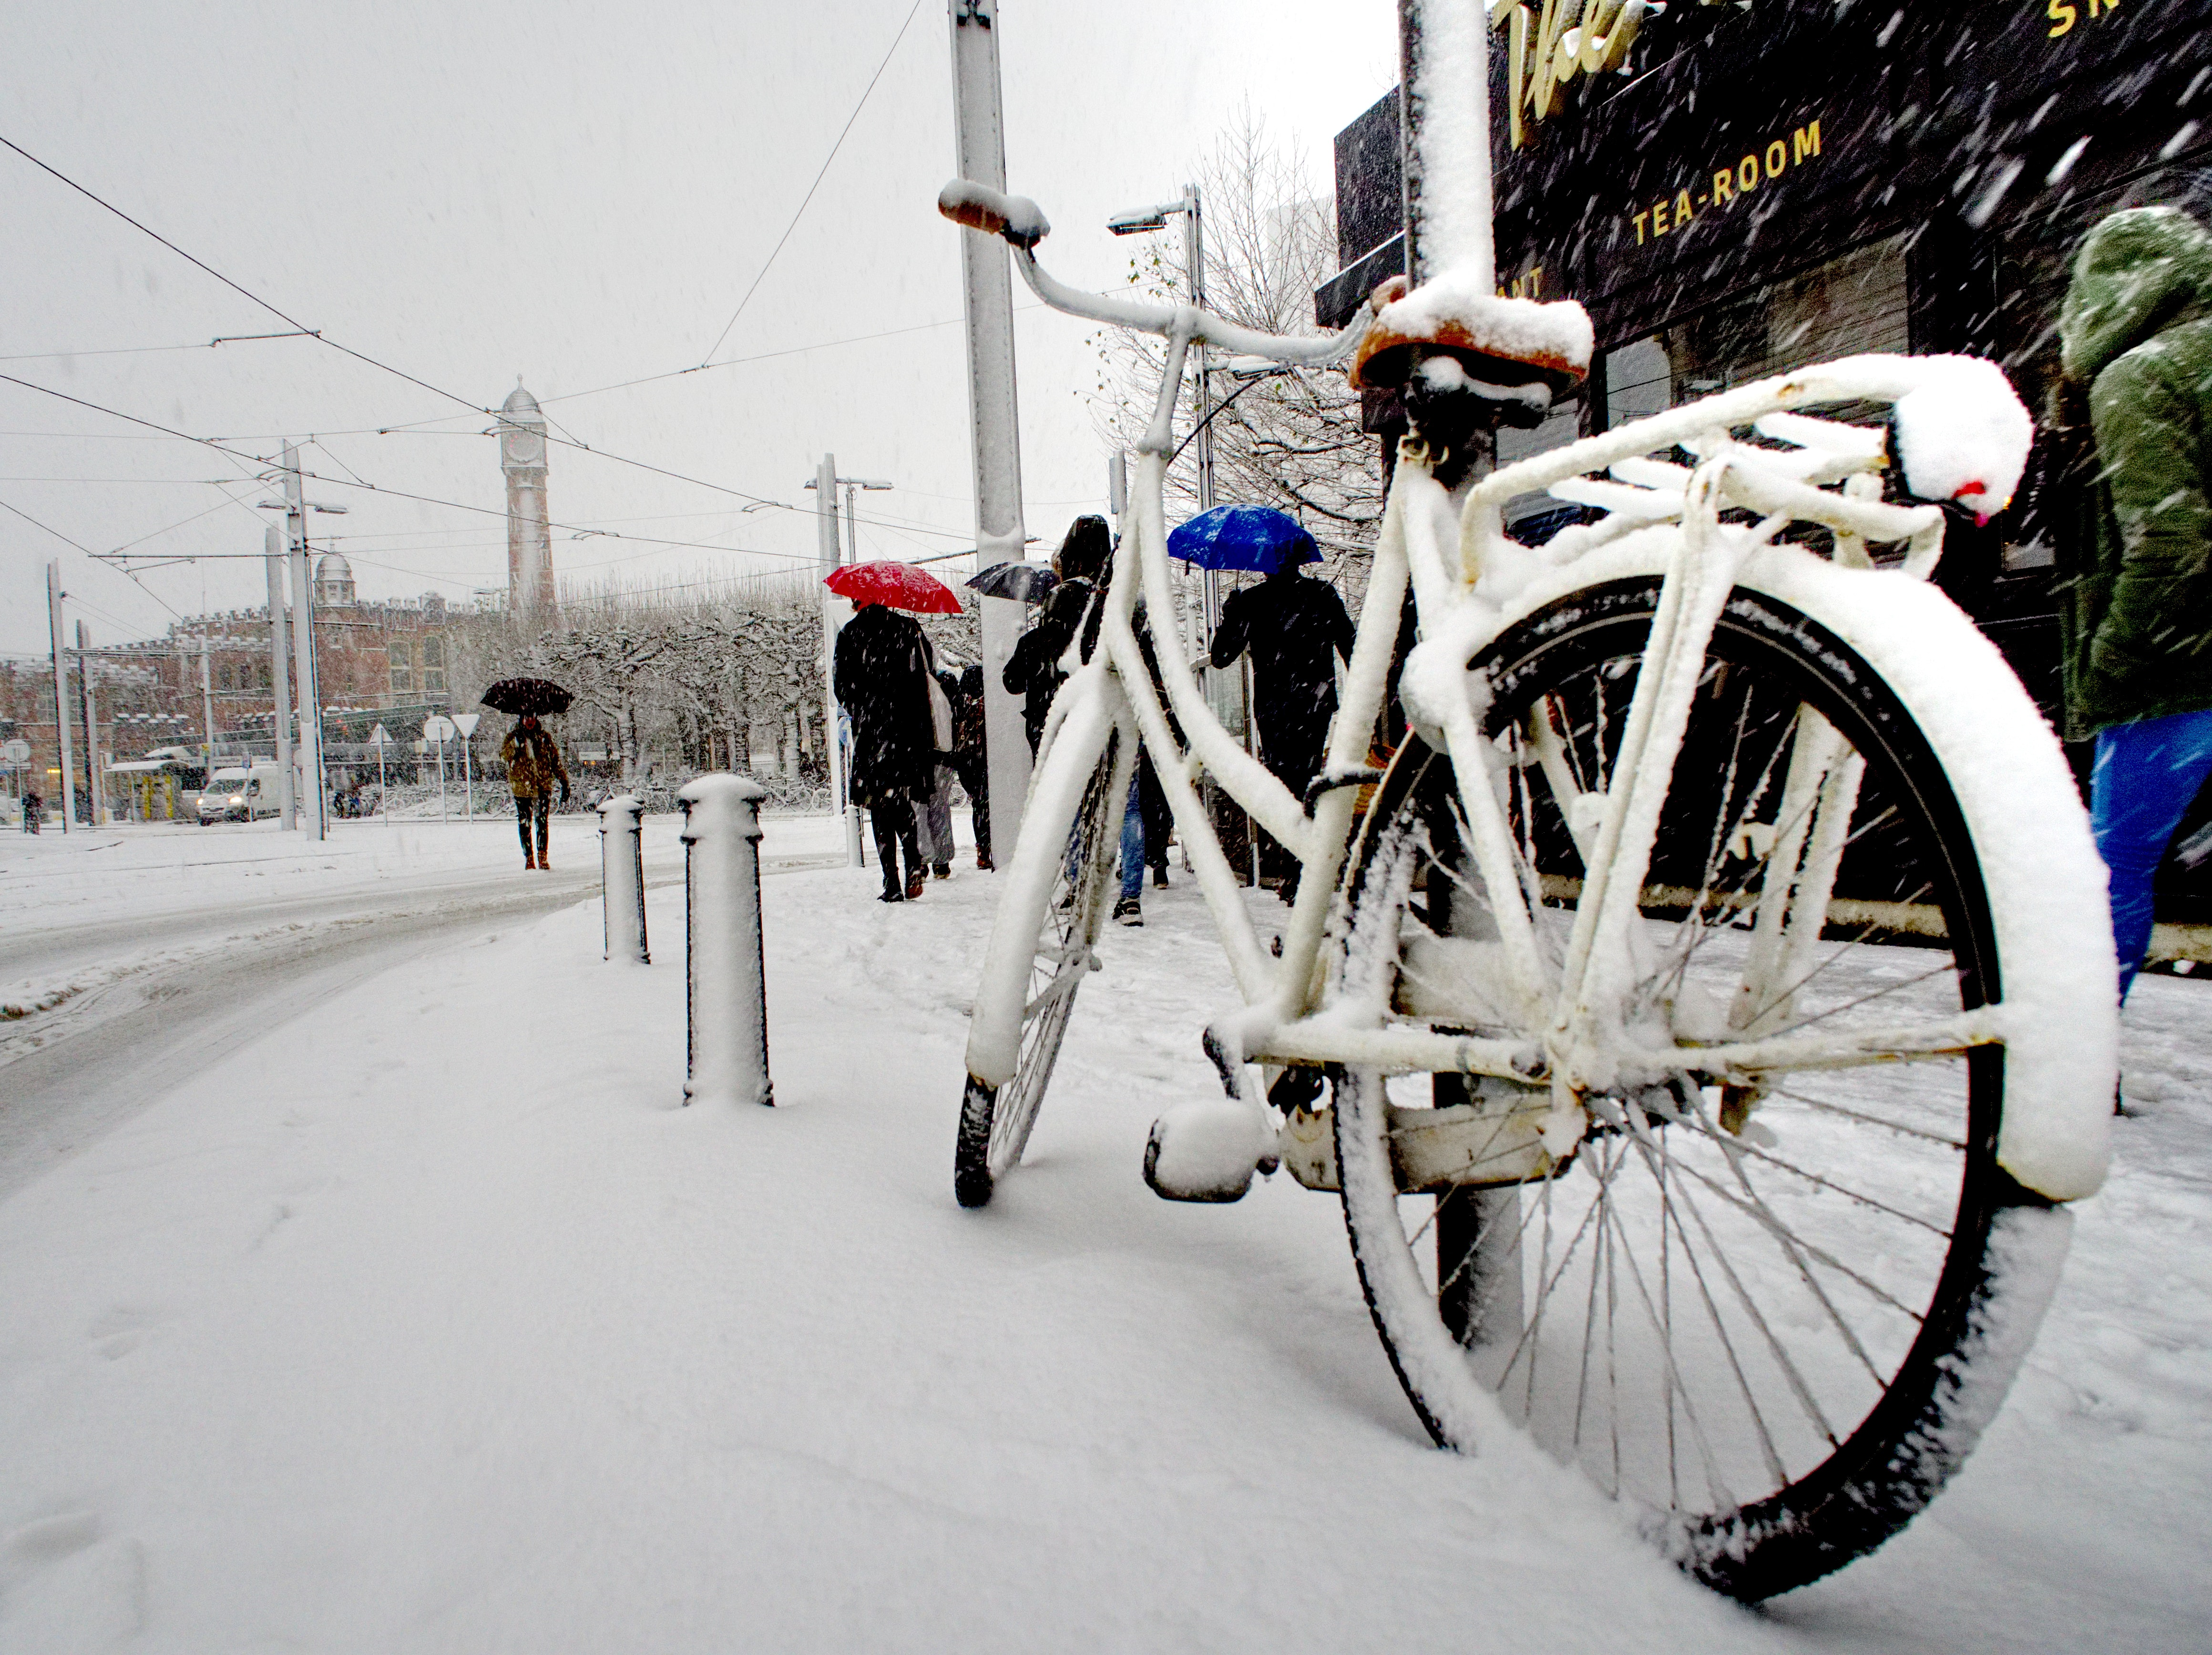 White city bike cover with snow photo